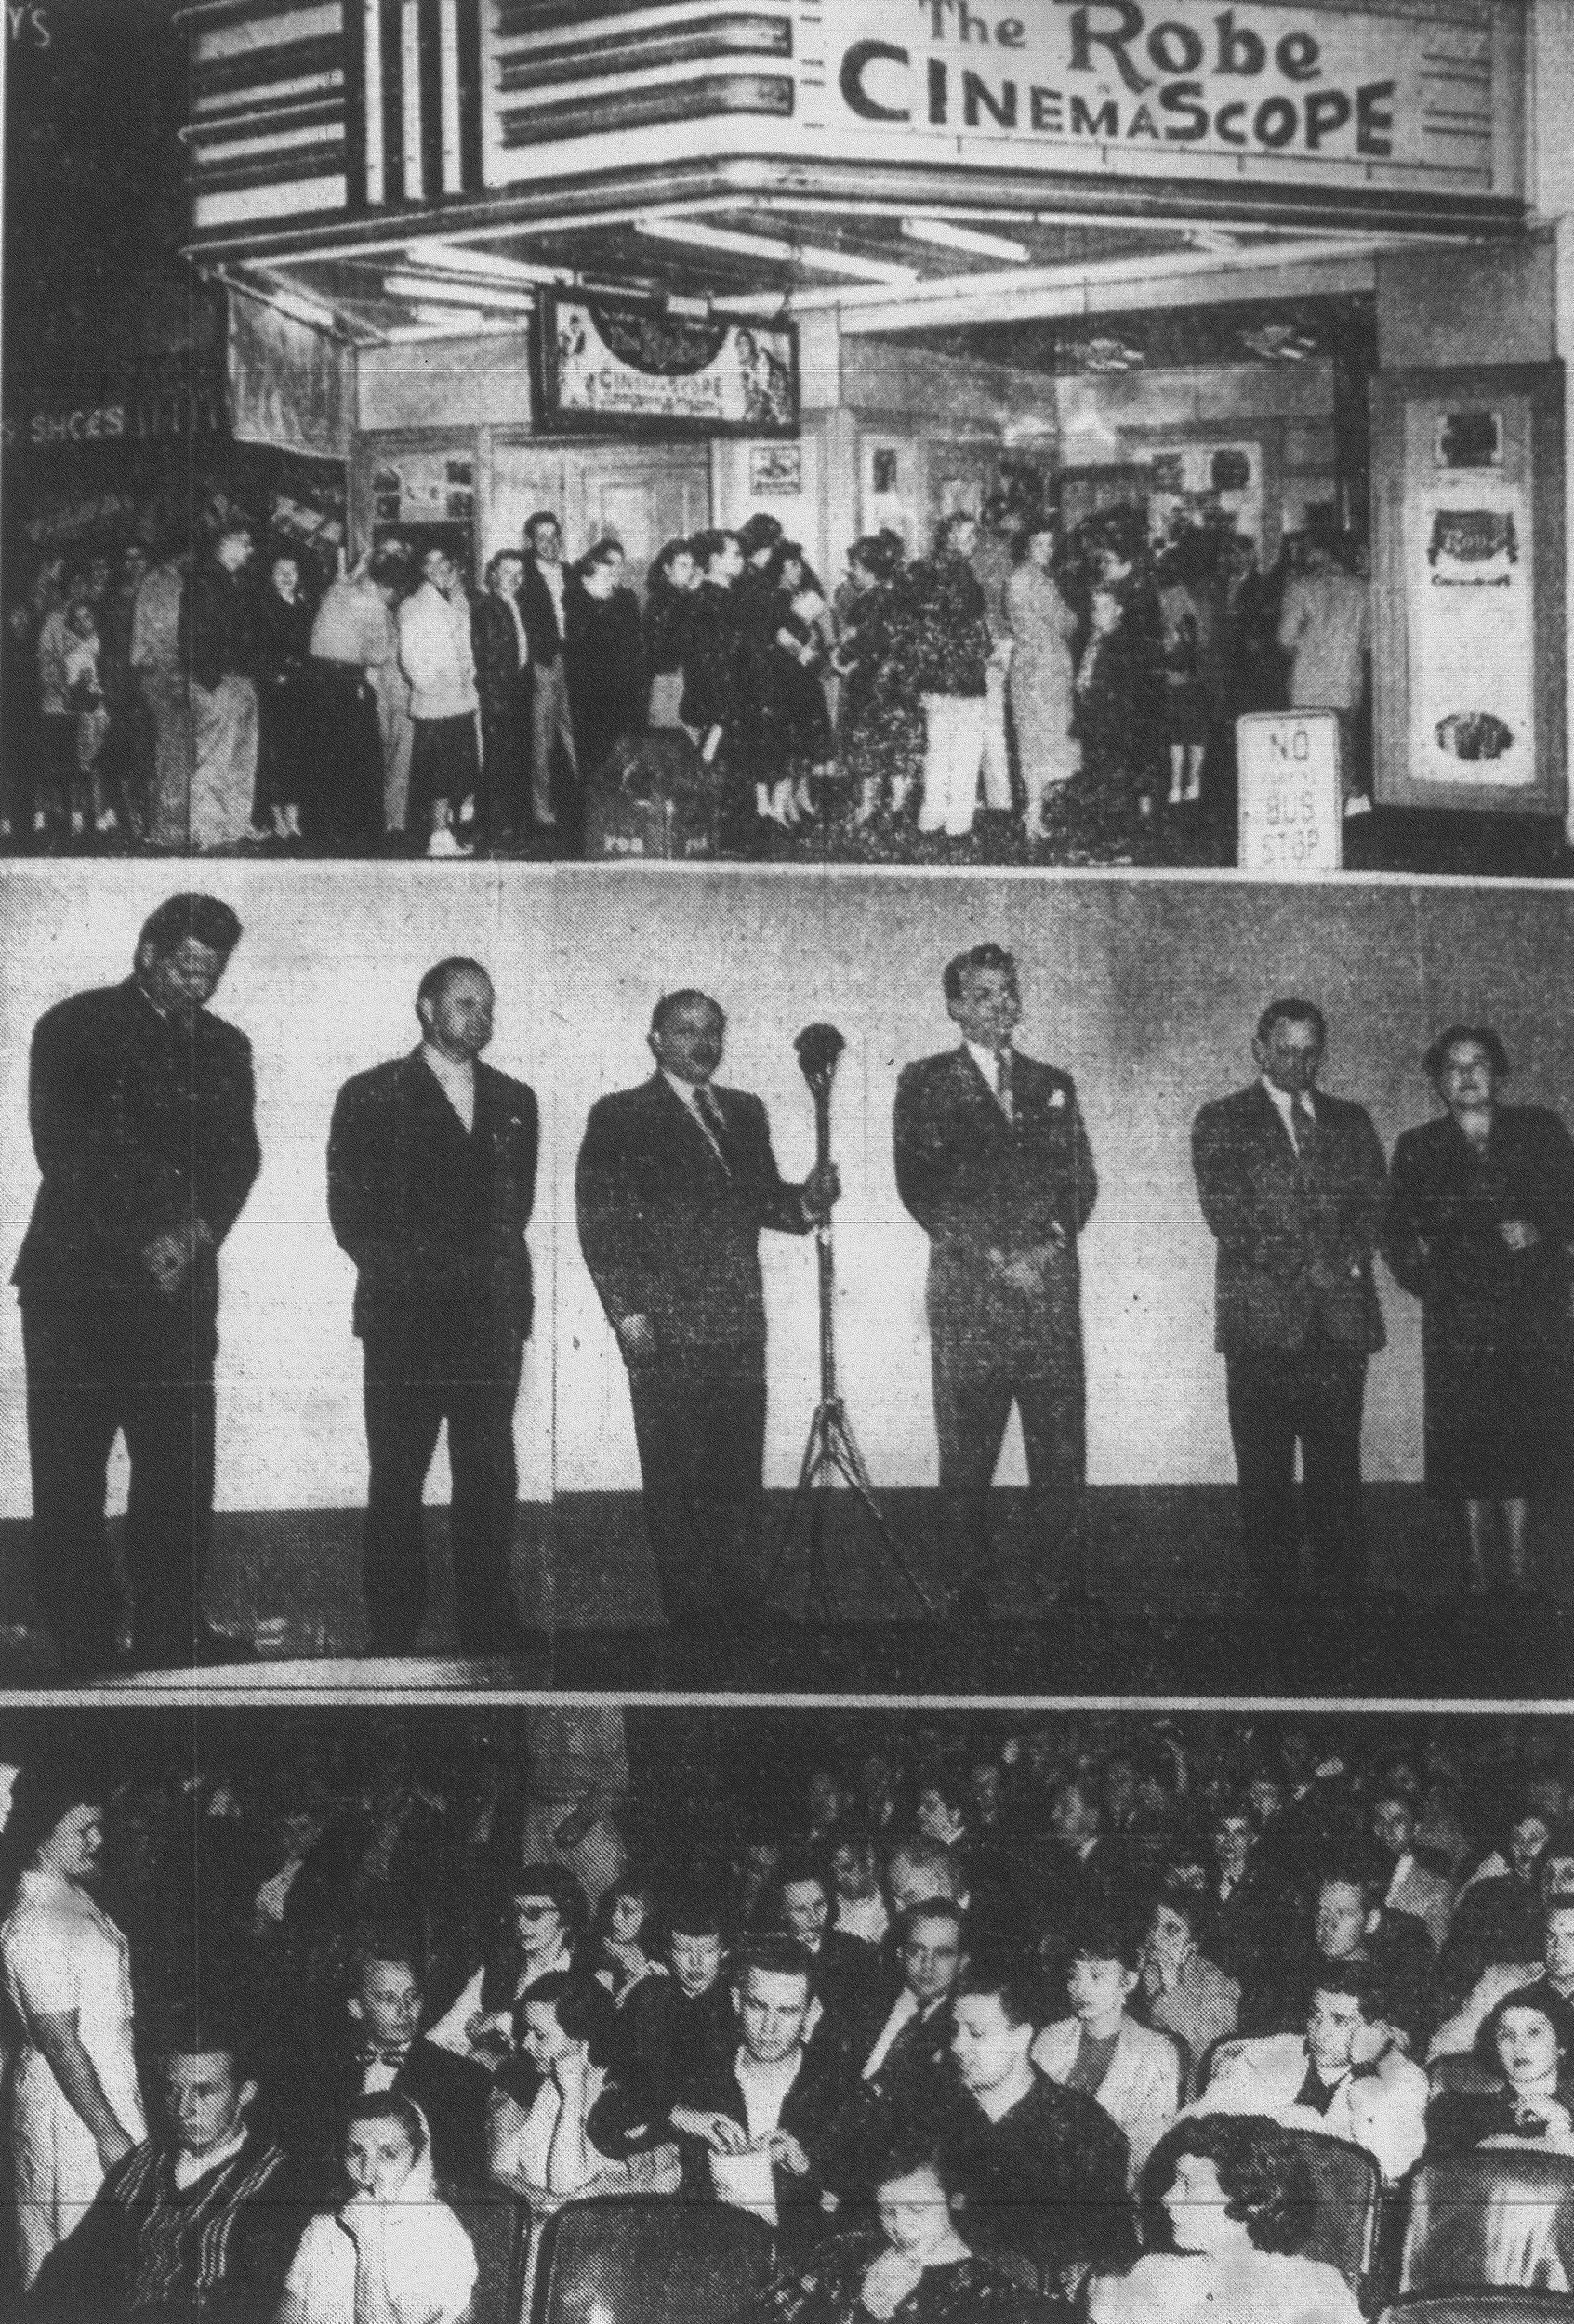 "The near-capacity crowd files into the Carolina Theatre for the premiere showing of ""The Robe,"" first movie to be filmed in Cinemascope. Speakers during brief ceremonies are shown, center photo, from left: Col. Richard Knobloch, deputy commander Shaw Air Force Base; G. Werber Bryan, president, Junior Chamber of Commerce; J. Lawrence Goldsmith, co-owner and manager of the Carolina; Councilman Clifton Brown, master of ceremonies; J.E. Eldridge, president, Sumter Merchants Association; and Mayor M. Priscilla Shaw. At bottom is a view of the audience from the front of the theater."